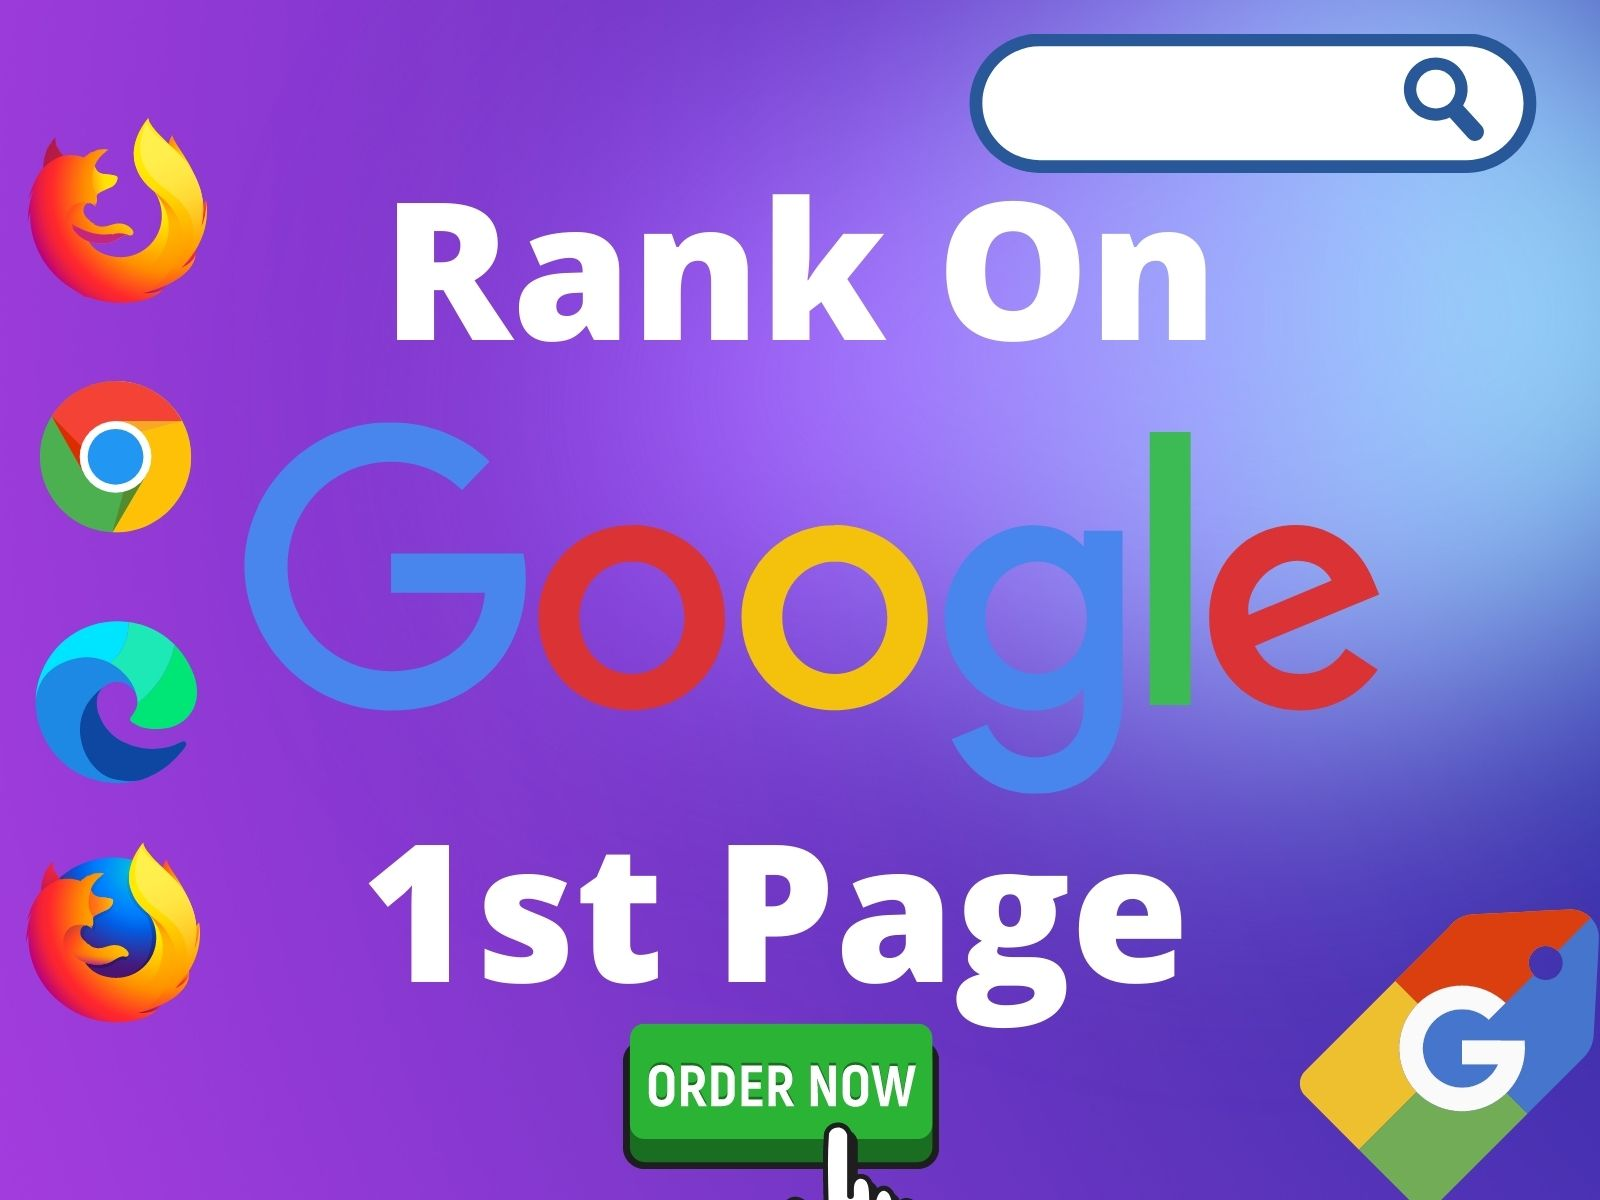 Offer guaranteed Rank your Website on Google 1st Page with High Quality Backlinks